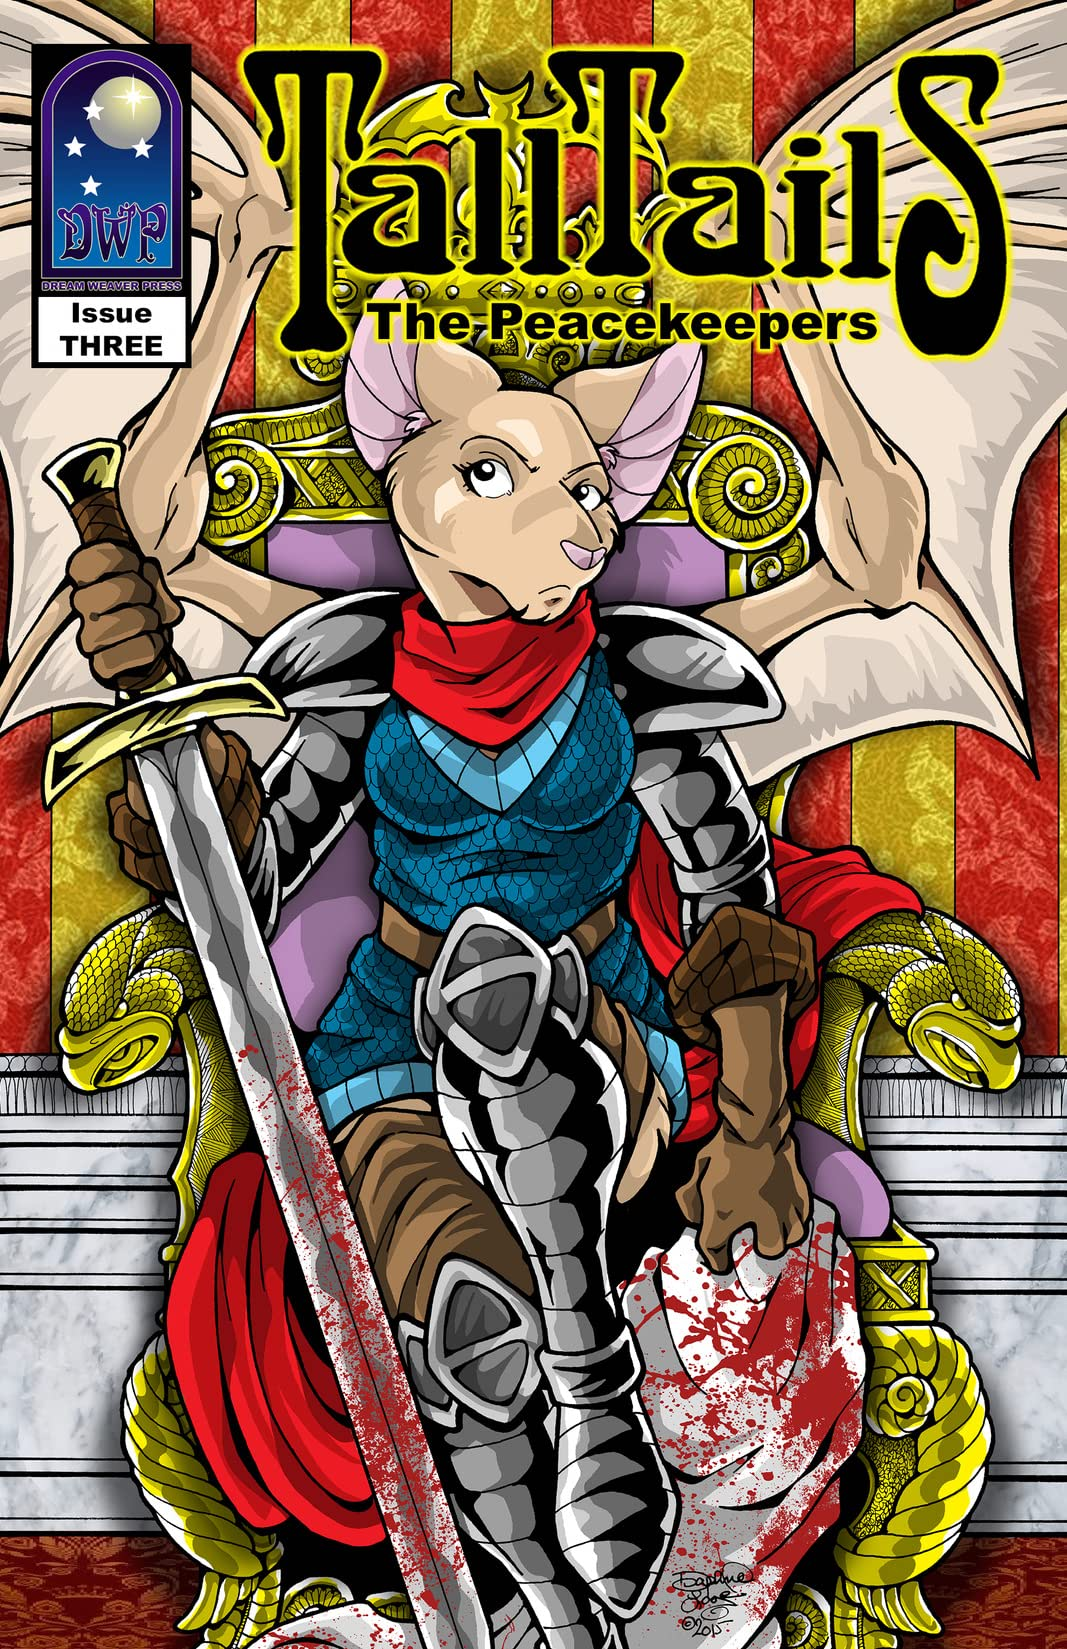 Tall Tails: The Peacekeepers #3